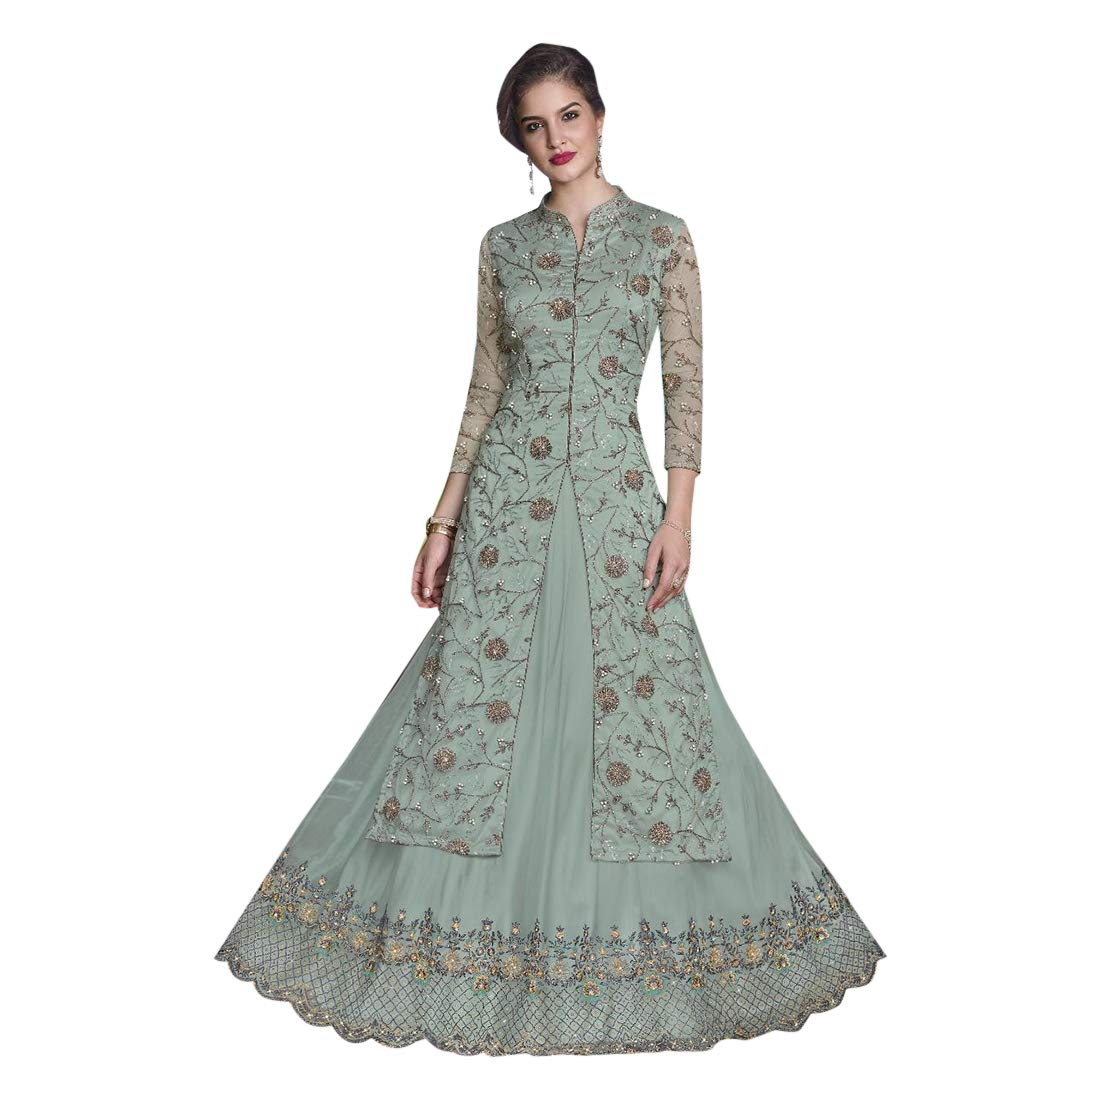 Palebluee Designer Party Skirt style Gown Salwar Kameez suit Dupatta for Women Ethnic Indian Muslim dress 7708